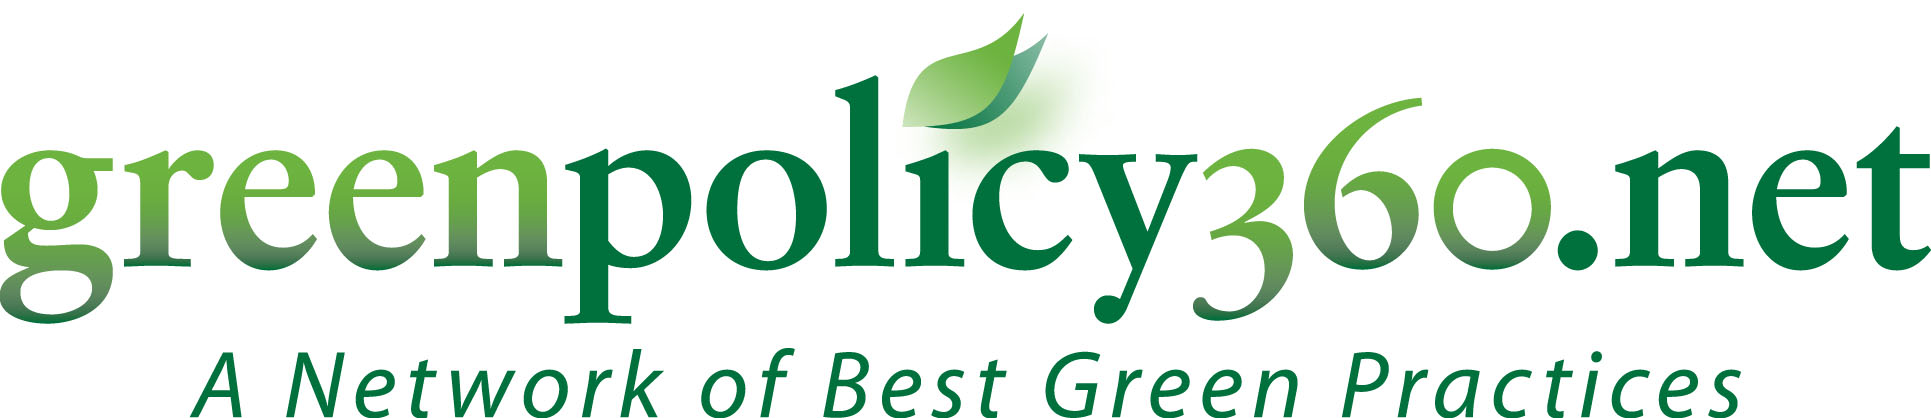 Greenpolicy - banner-1a.jpg